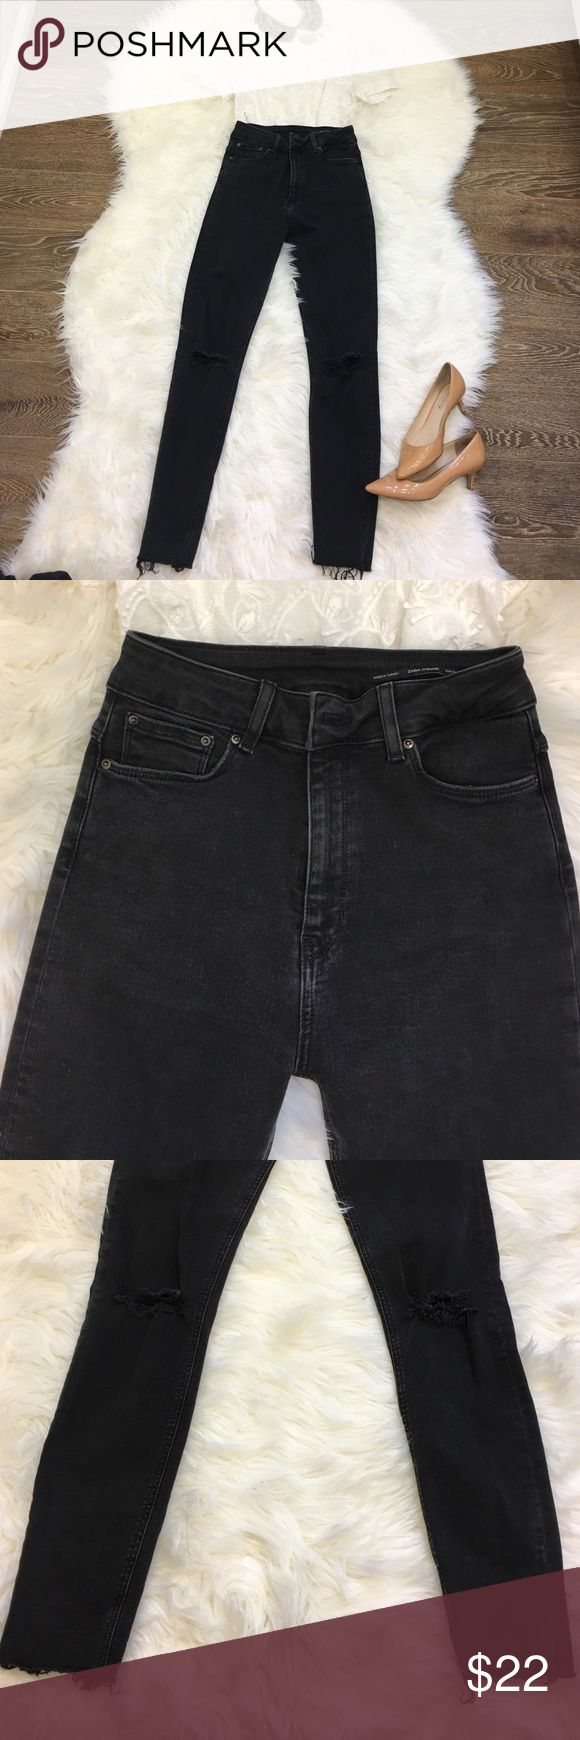 Zara Woman High Rise Jeans with Ripped Knees Skinny leg with great stretch. Love this look with heels or sneakers!!! Zara Jeans Skinny